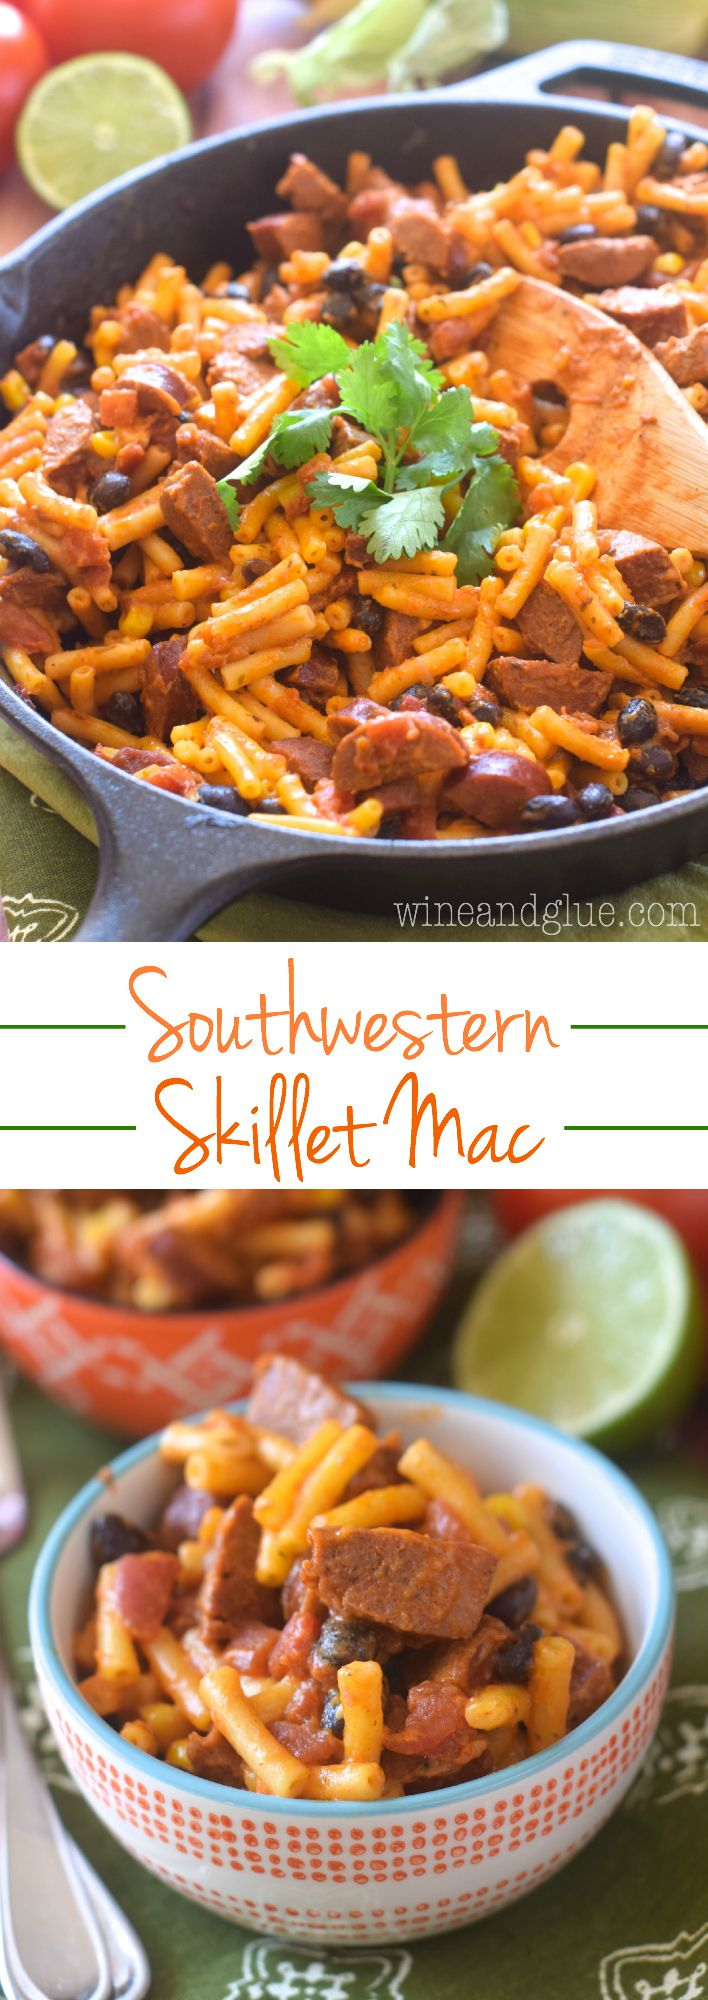 This Southwestern Skillet Mac is such an easy weeknight dinner and packed with flavor! Just FIVE ingredients!